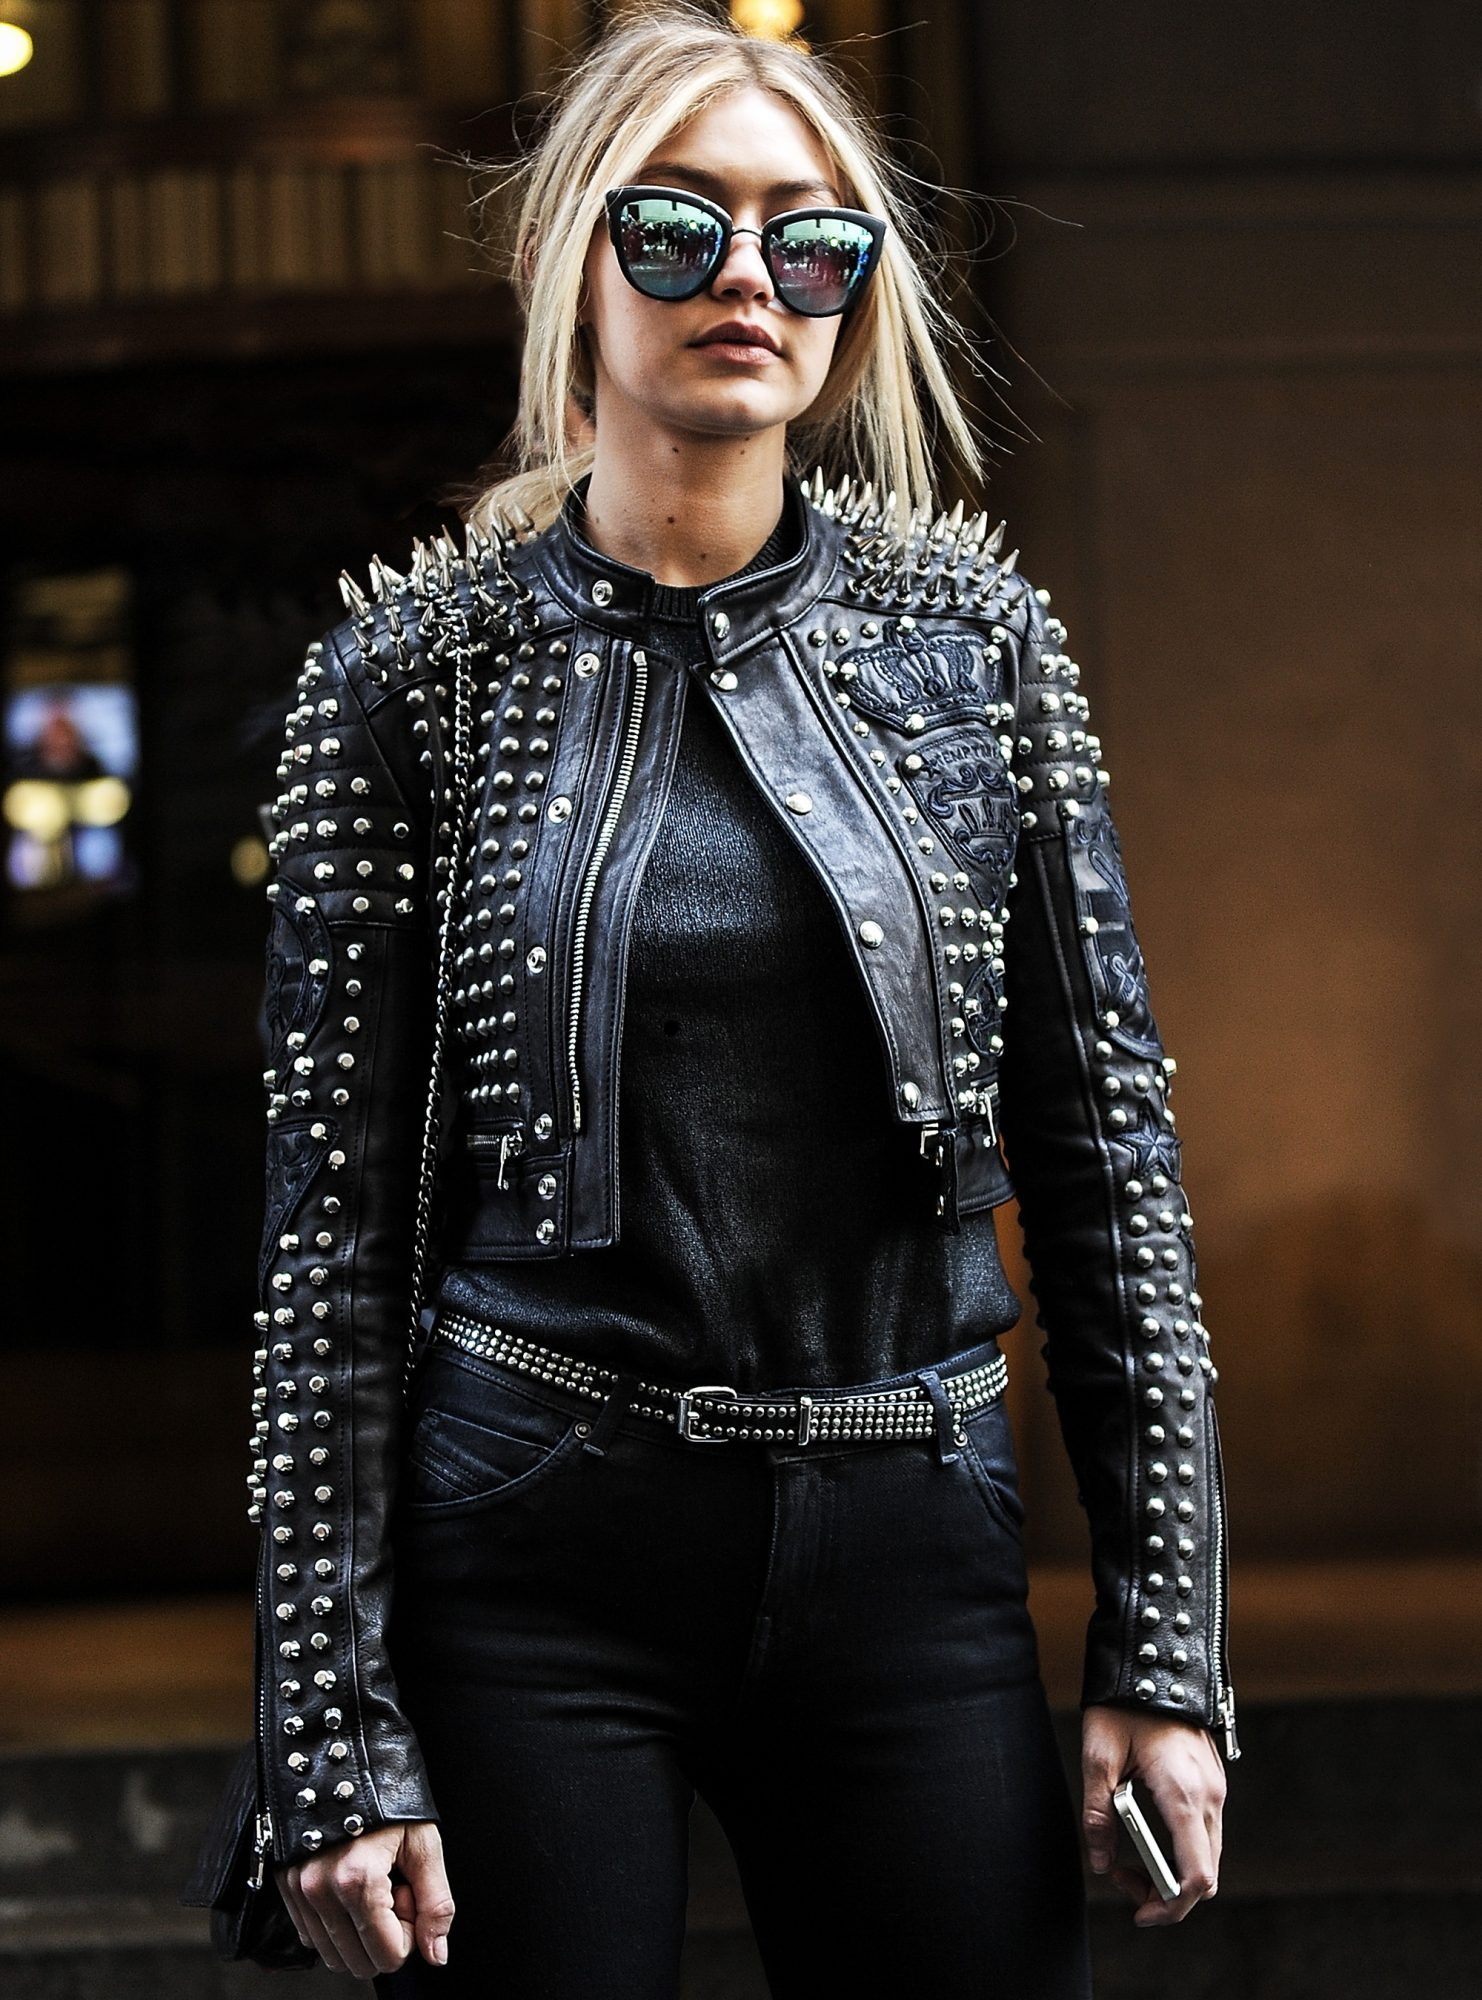 Womens Leather Jackets: Celebrities, Fashion, Bikers ...